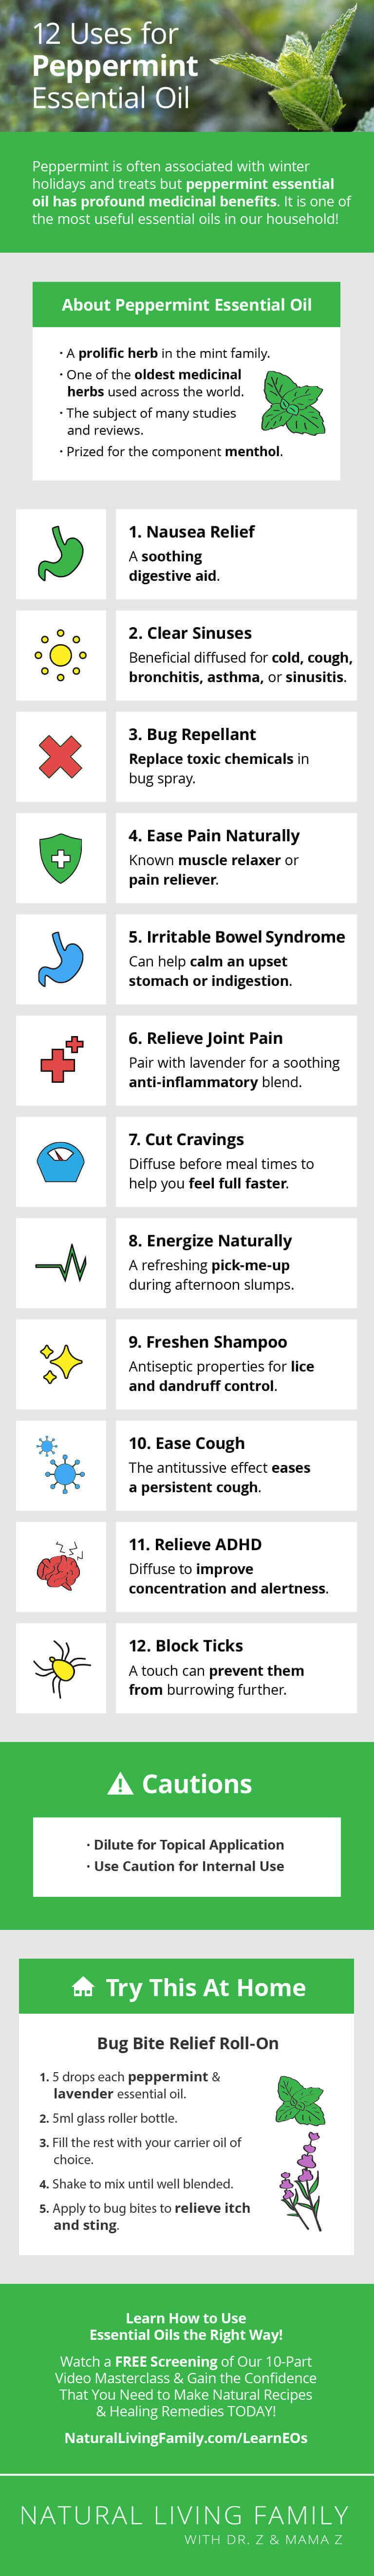 12 Uses For Peppermint Essential Oil